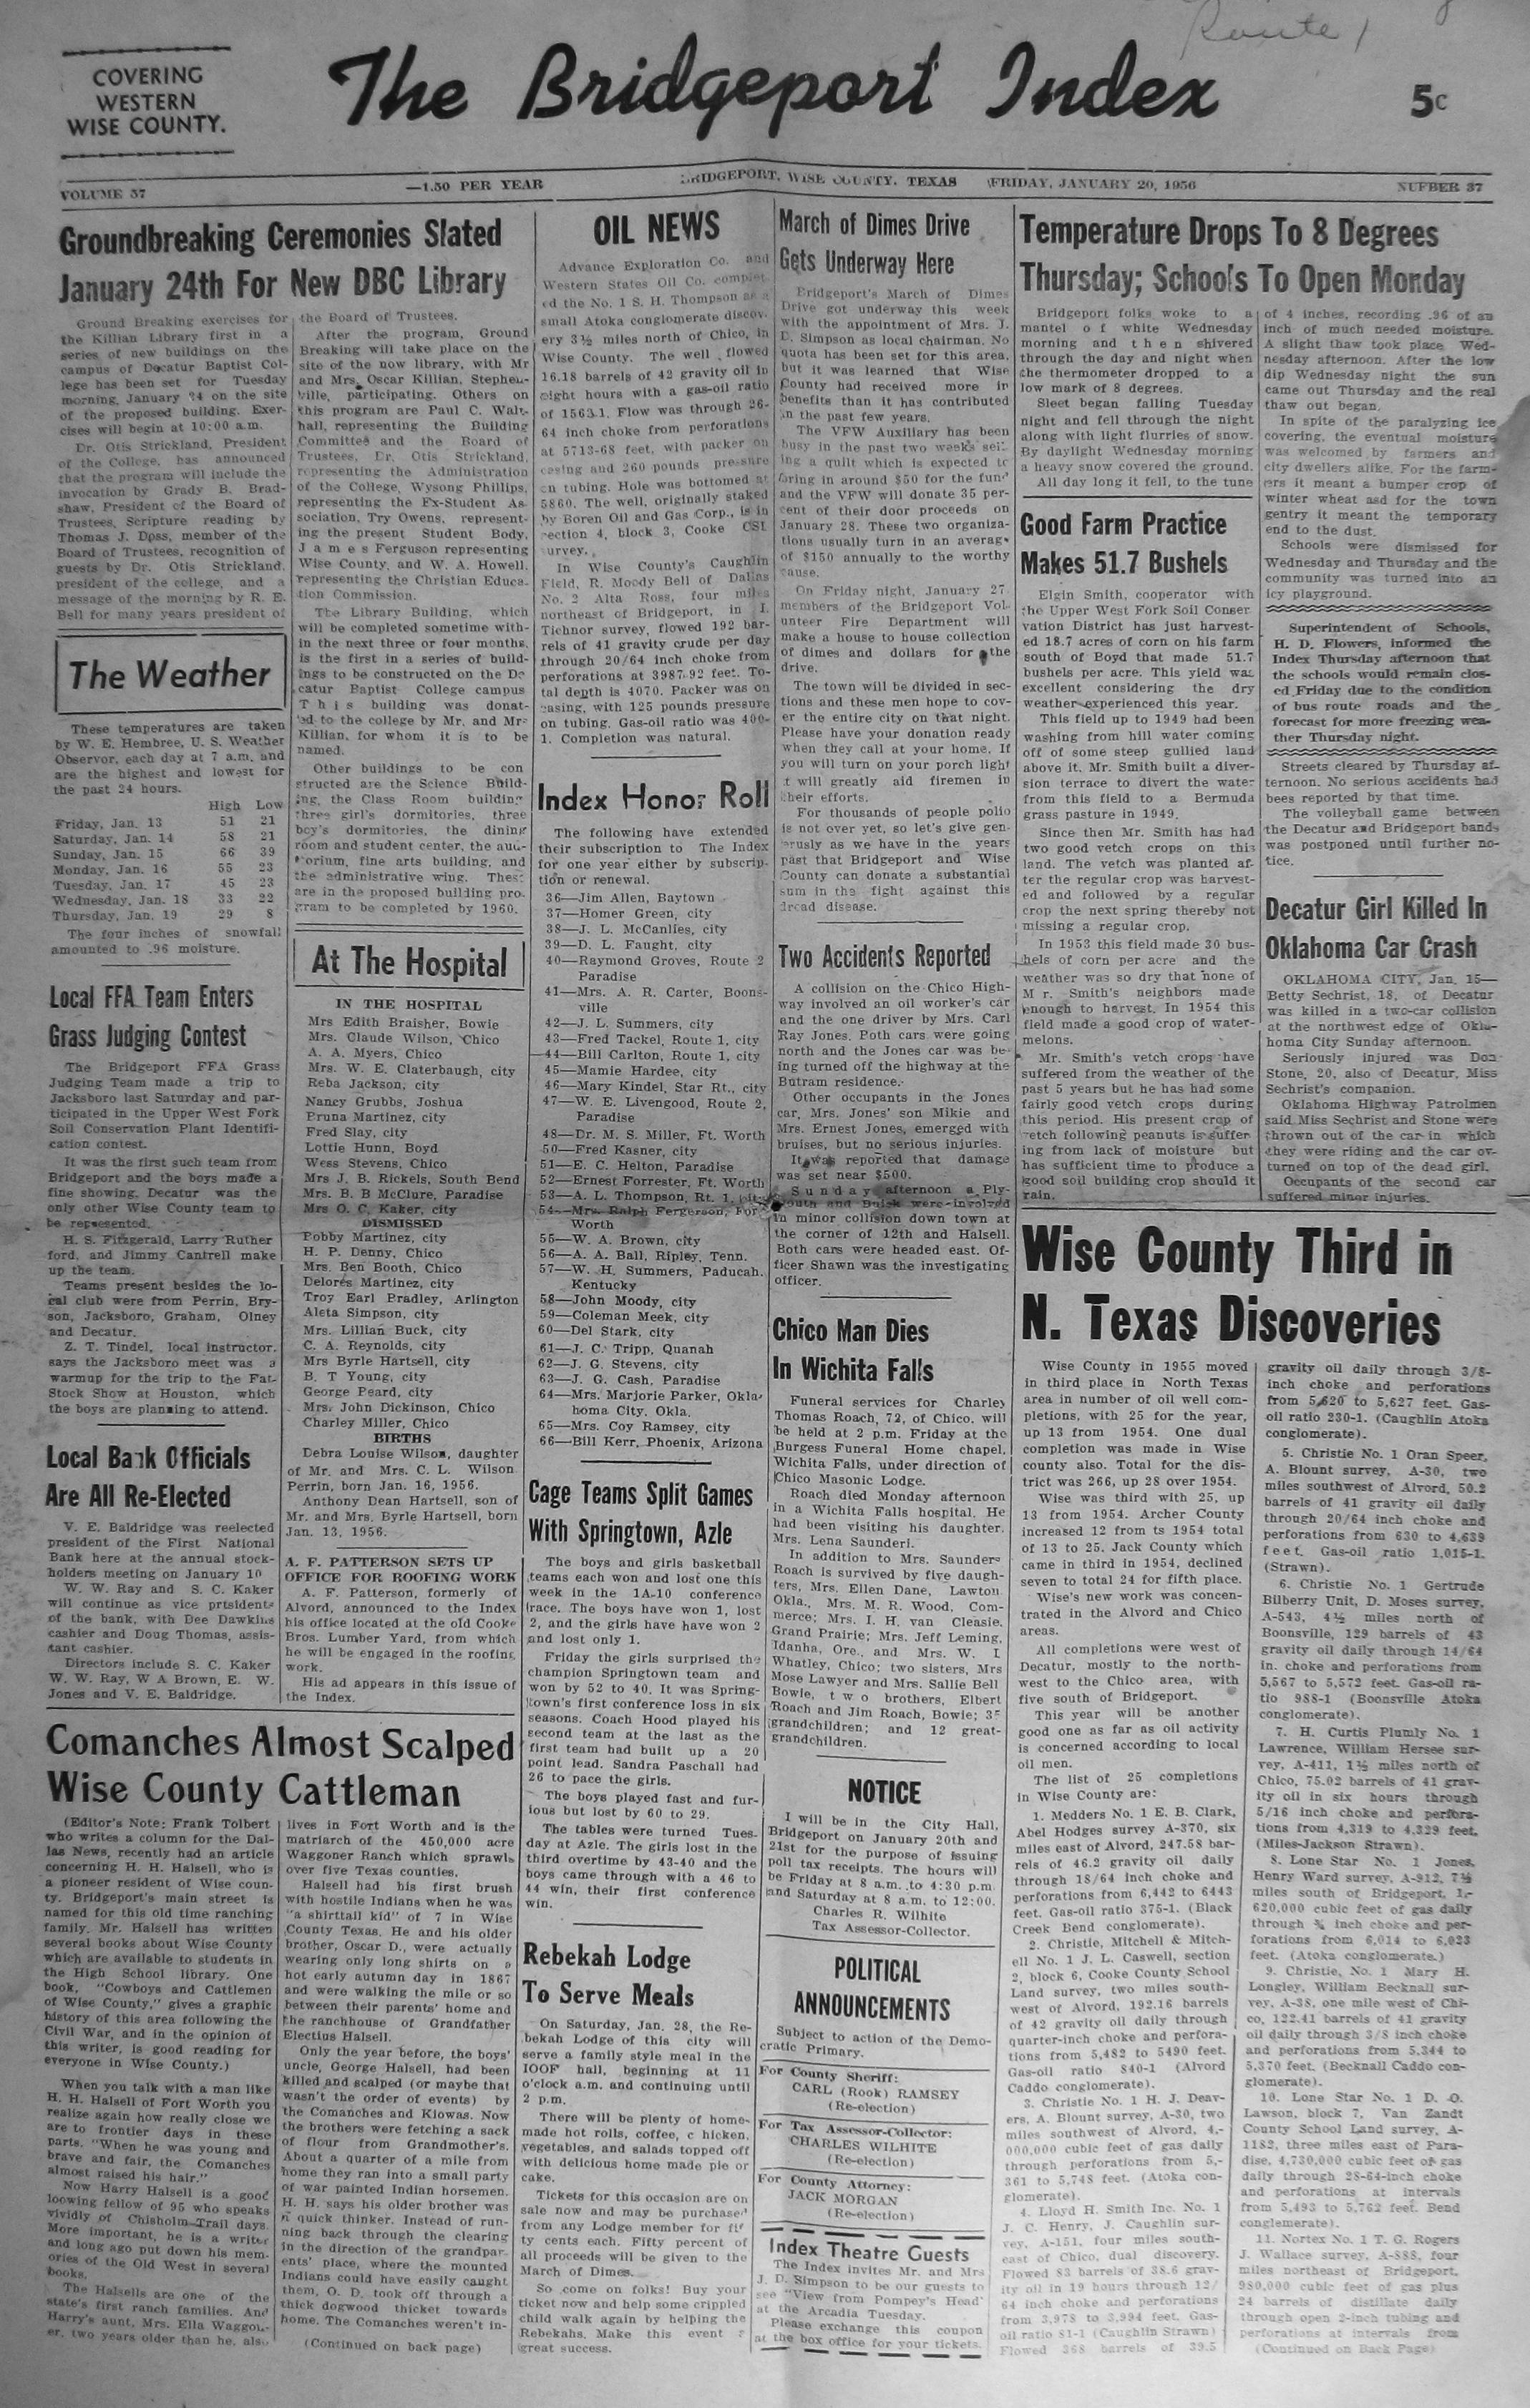 Index of Names (R-Z) from the 1956 Bridgeport Index Newspaper